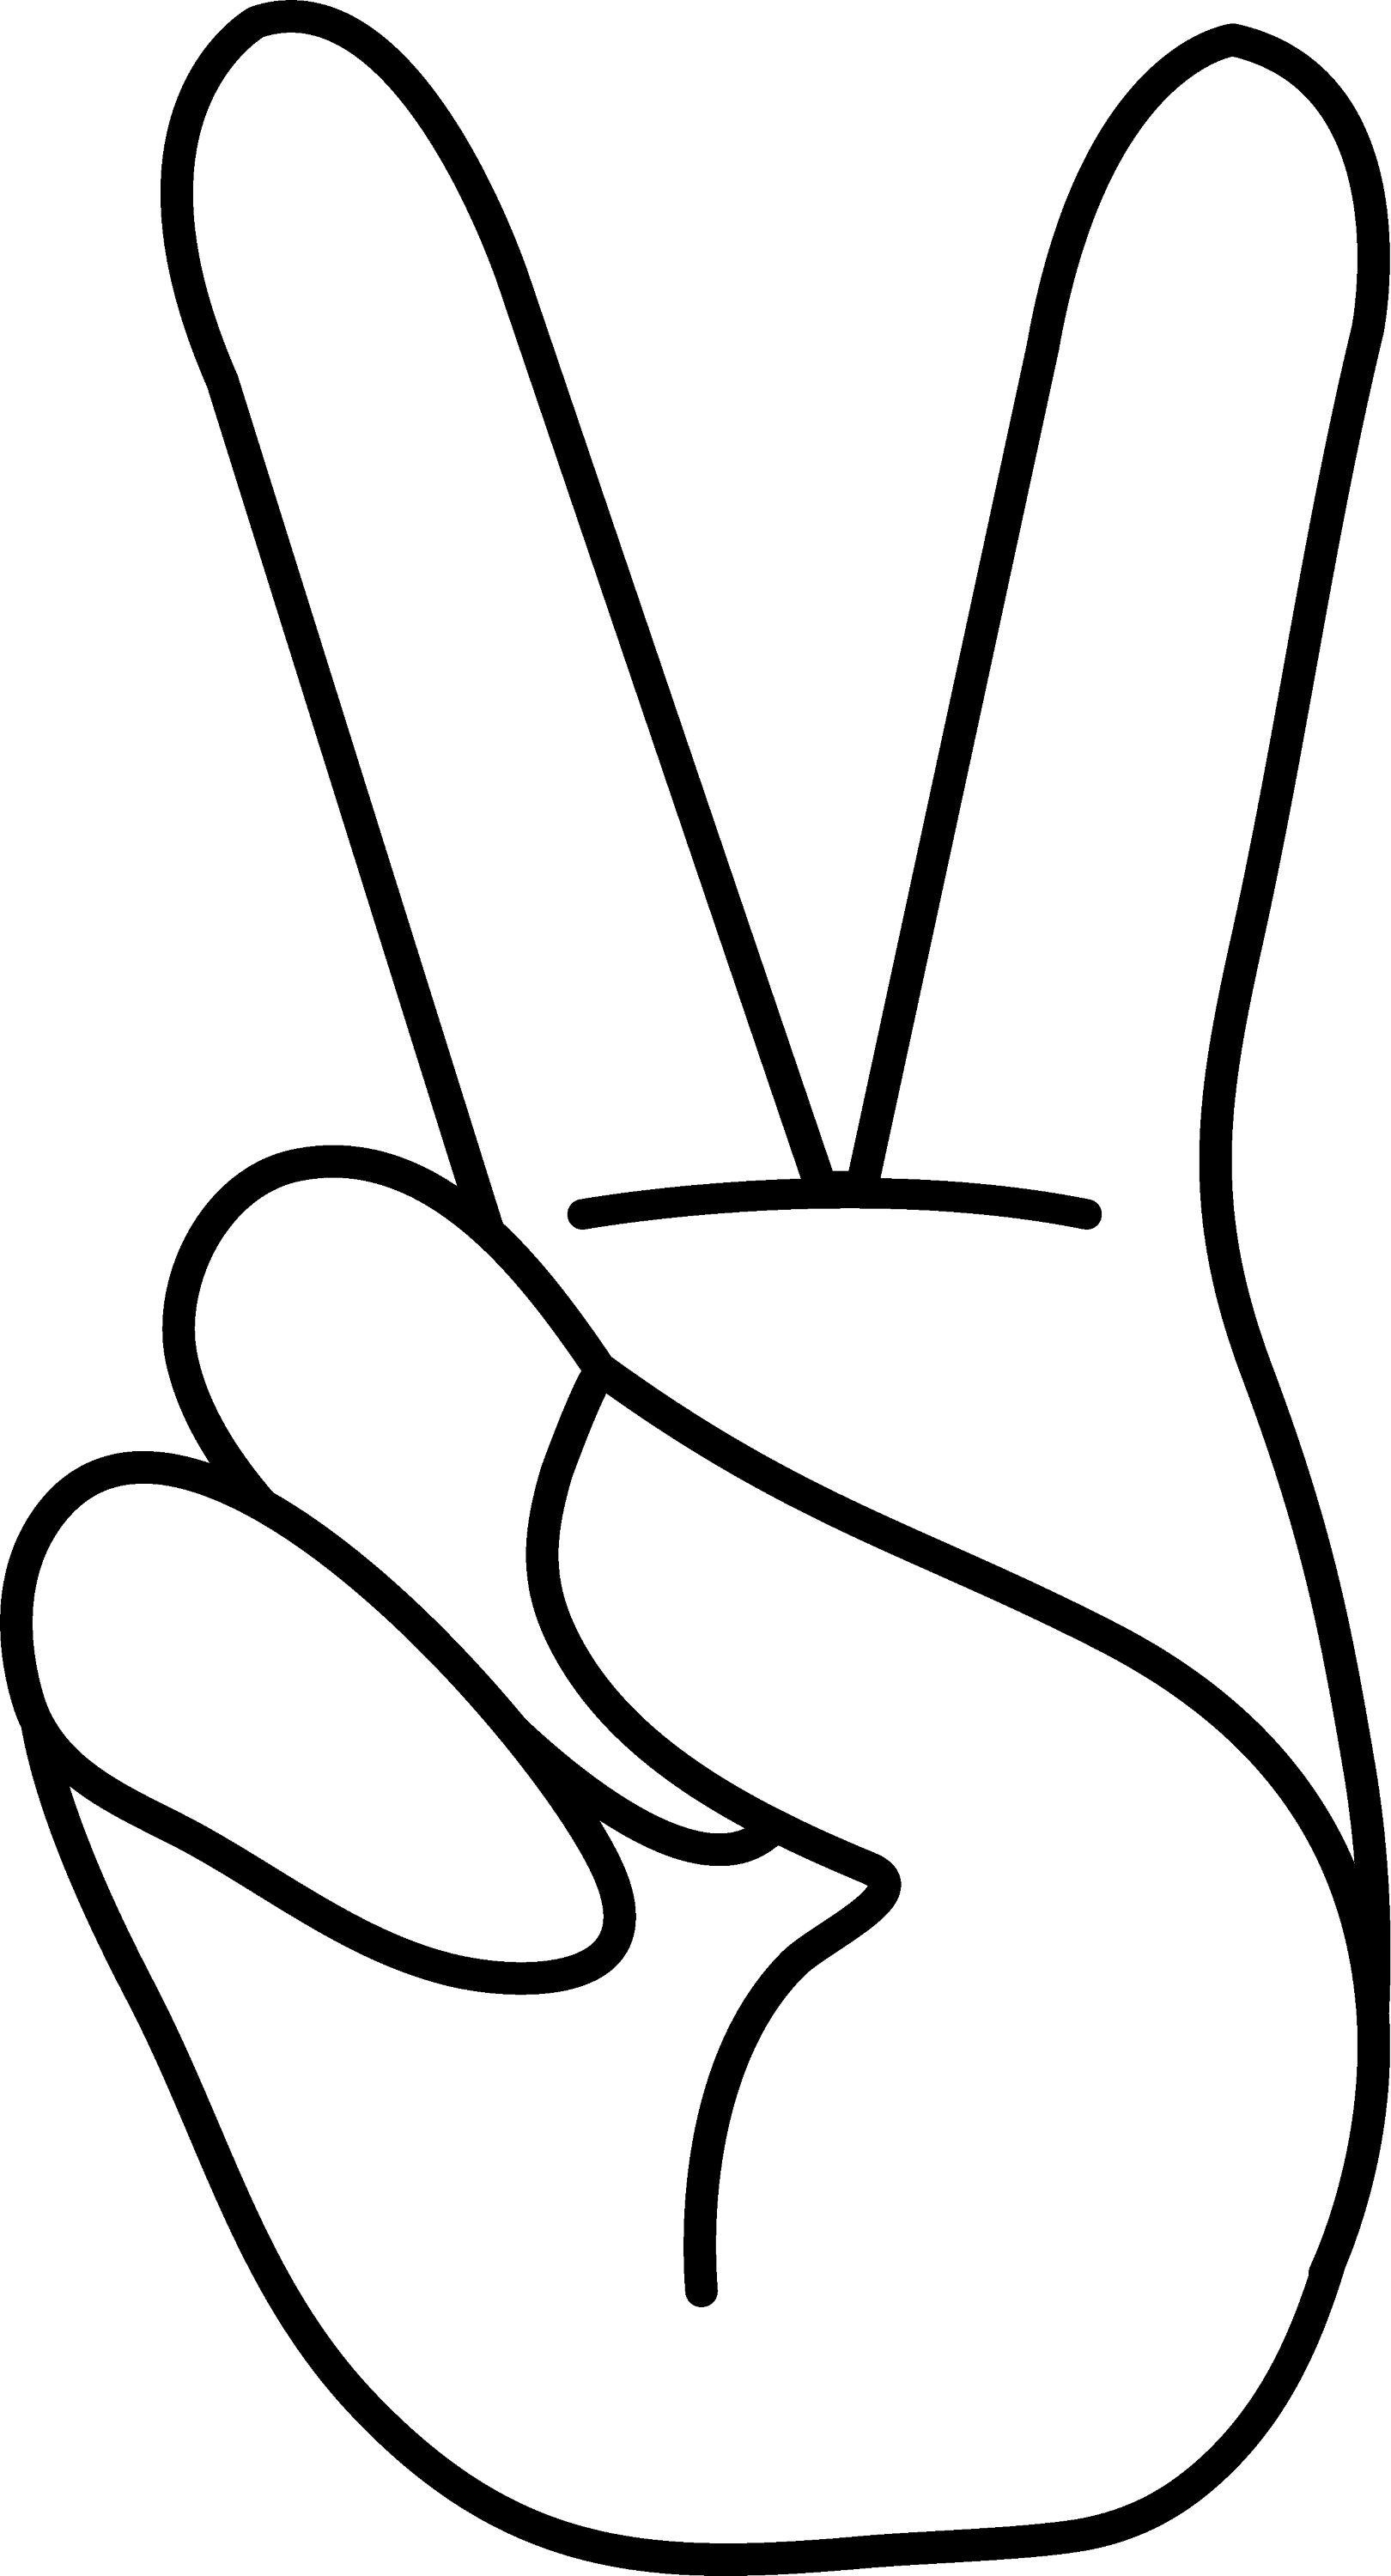 peace hand sign coloring page